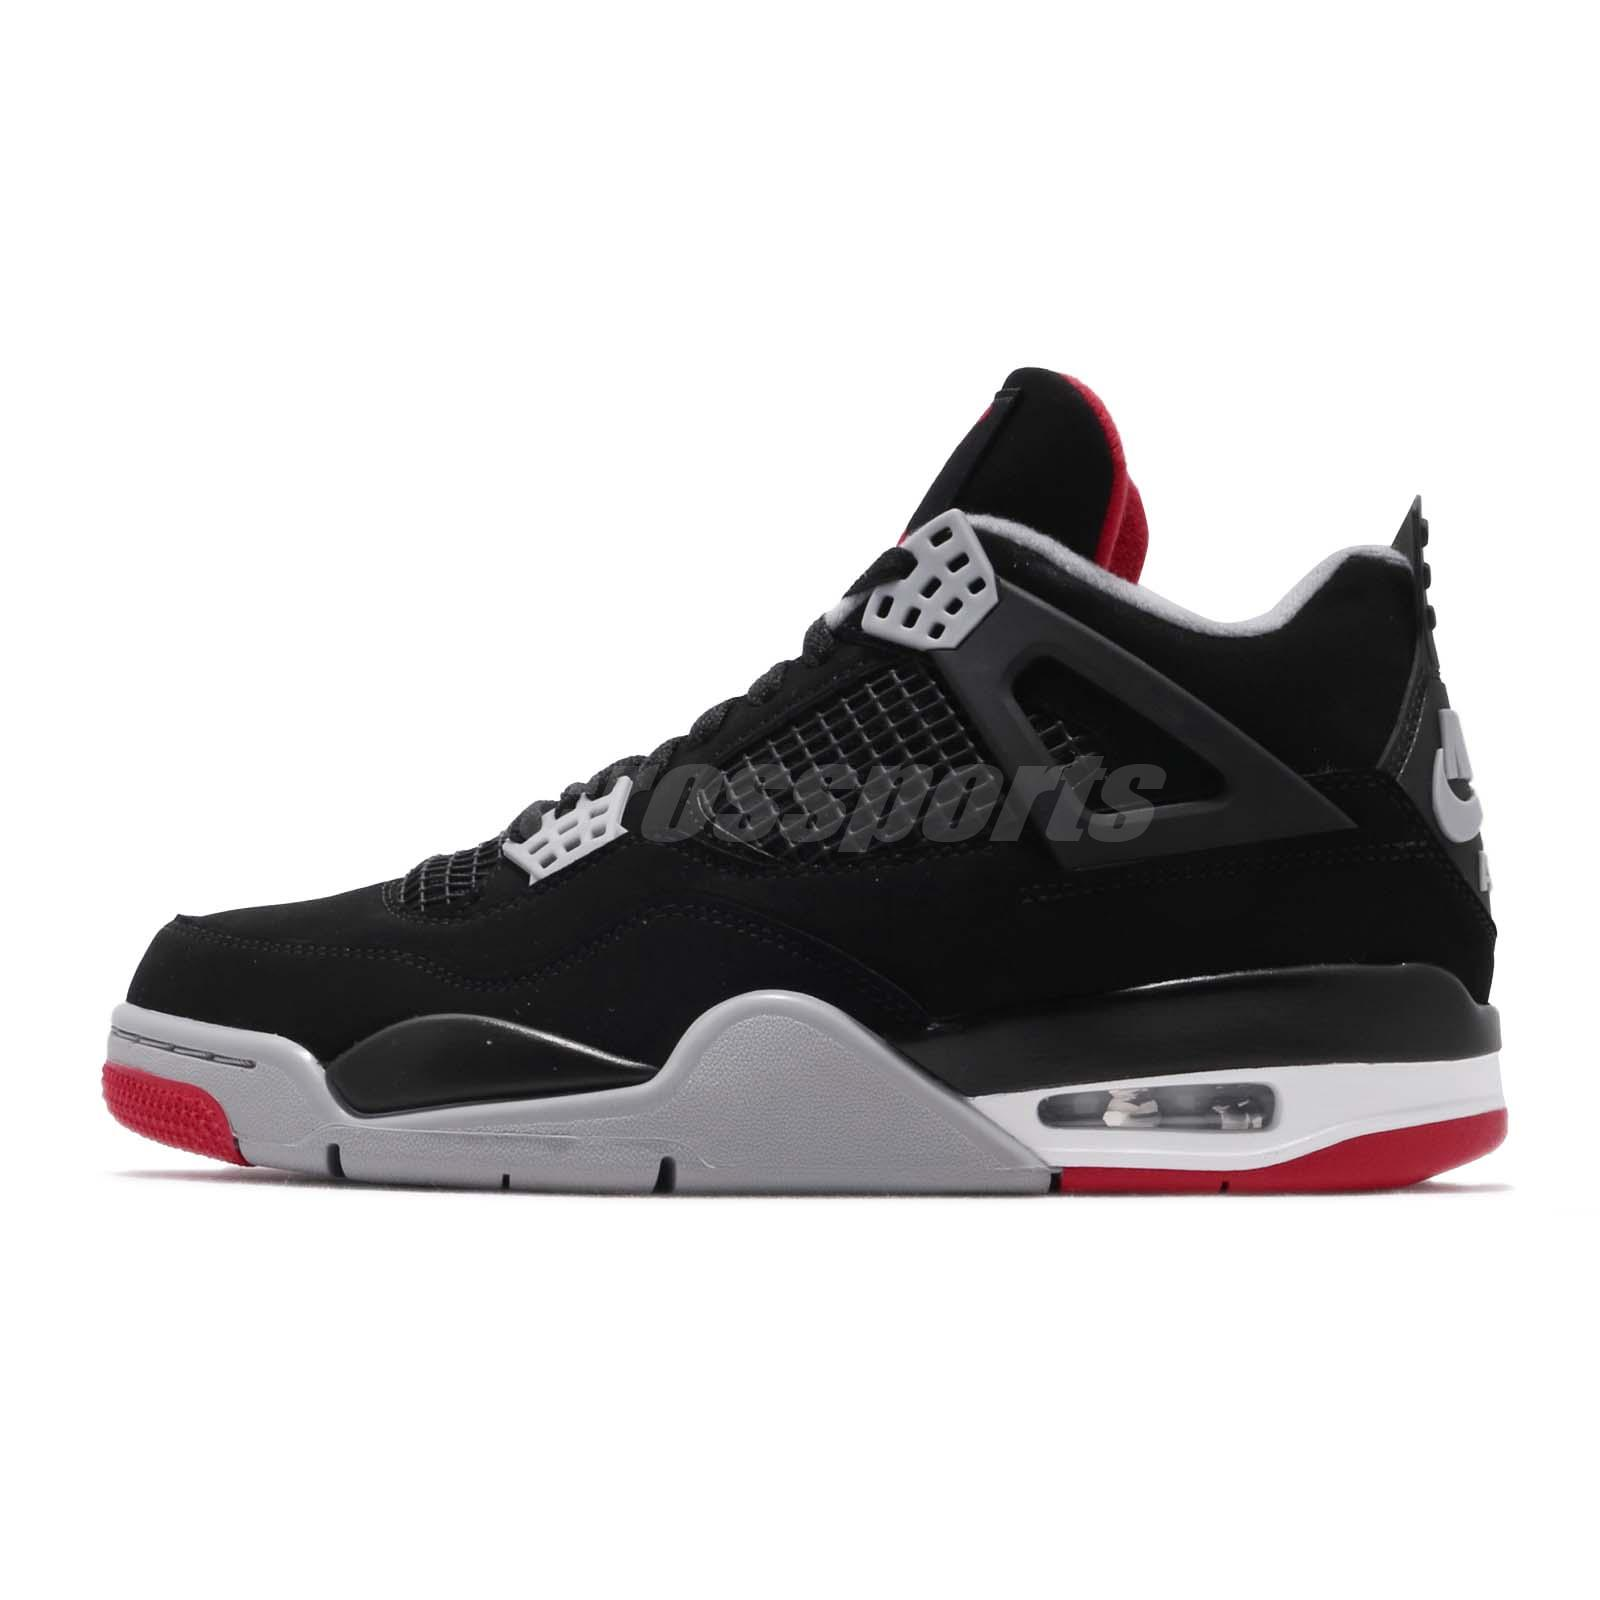 Nike Air Jordan 4 Retro Bred 2019 Iv Aj4 Black Red Men Shoes Sneakers 308497-060 Clothing, Shoes & Accessories Athletic Shoes